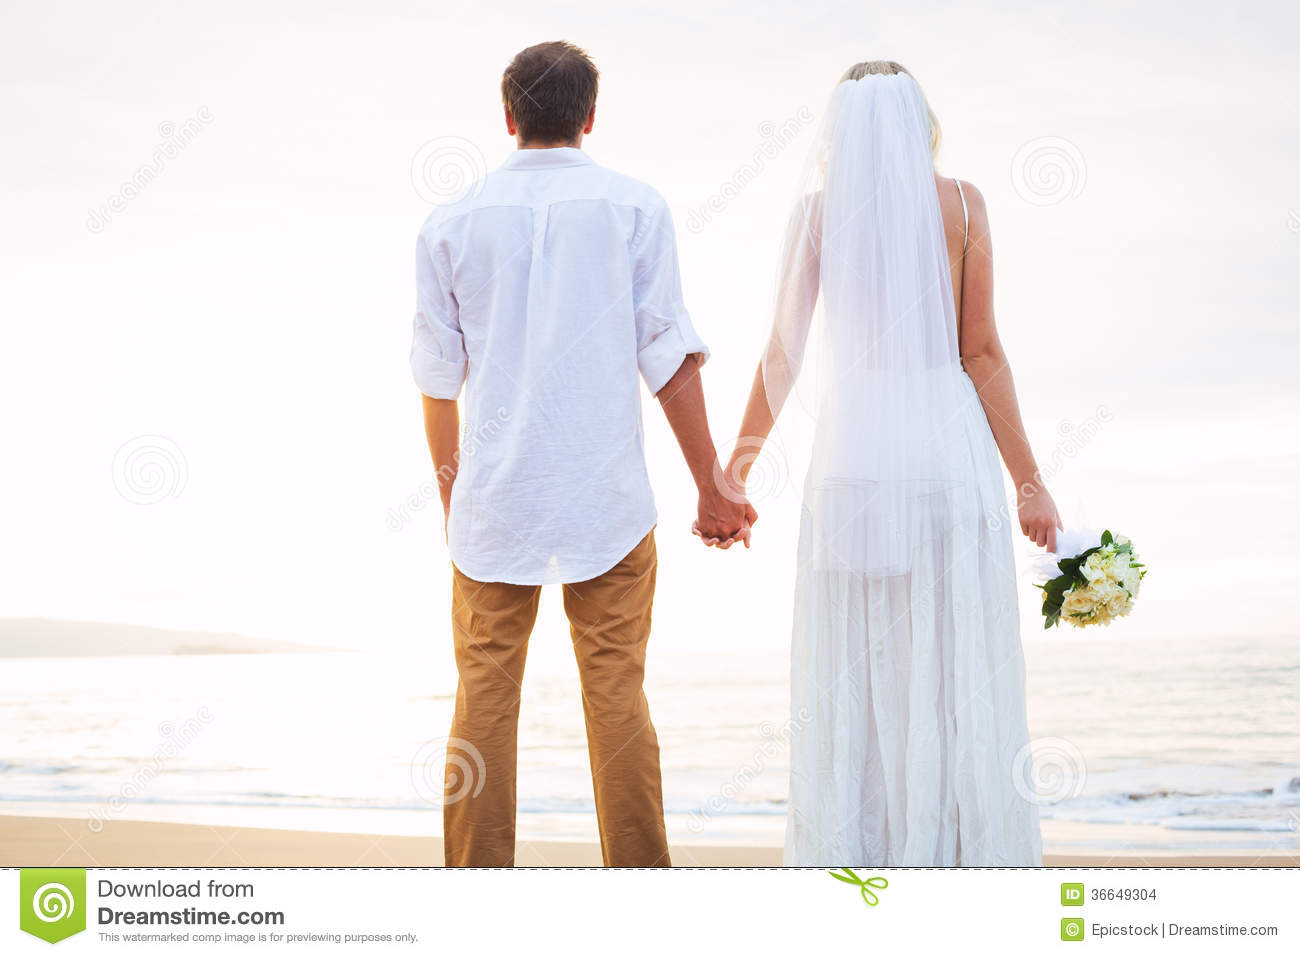 catholic singles in hawi Kailua kona's best 100% free catholic girls dating site meet thousands of  single catholic women in kailua kona with mingle2's free personal ads and chat .